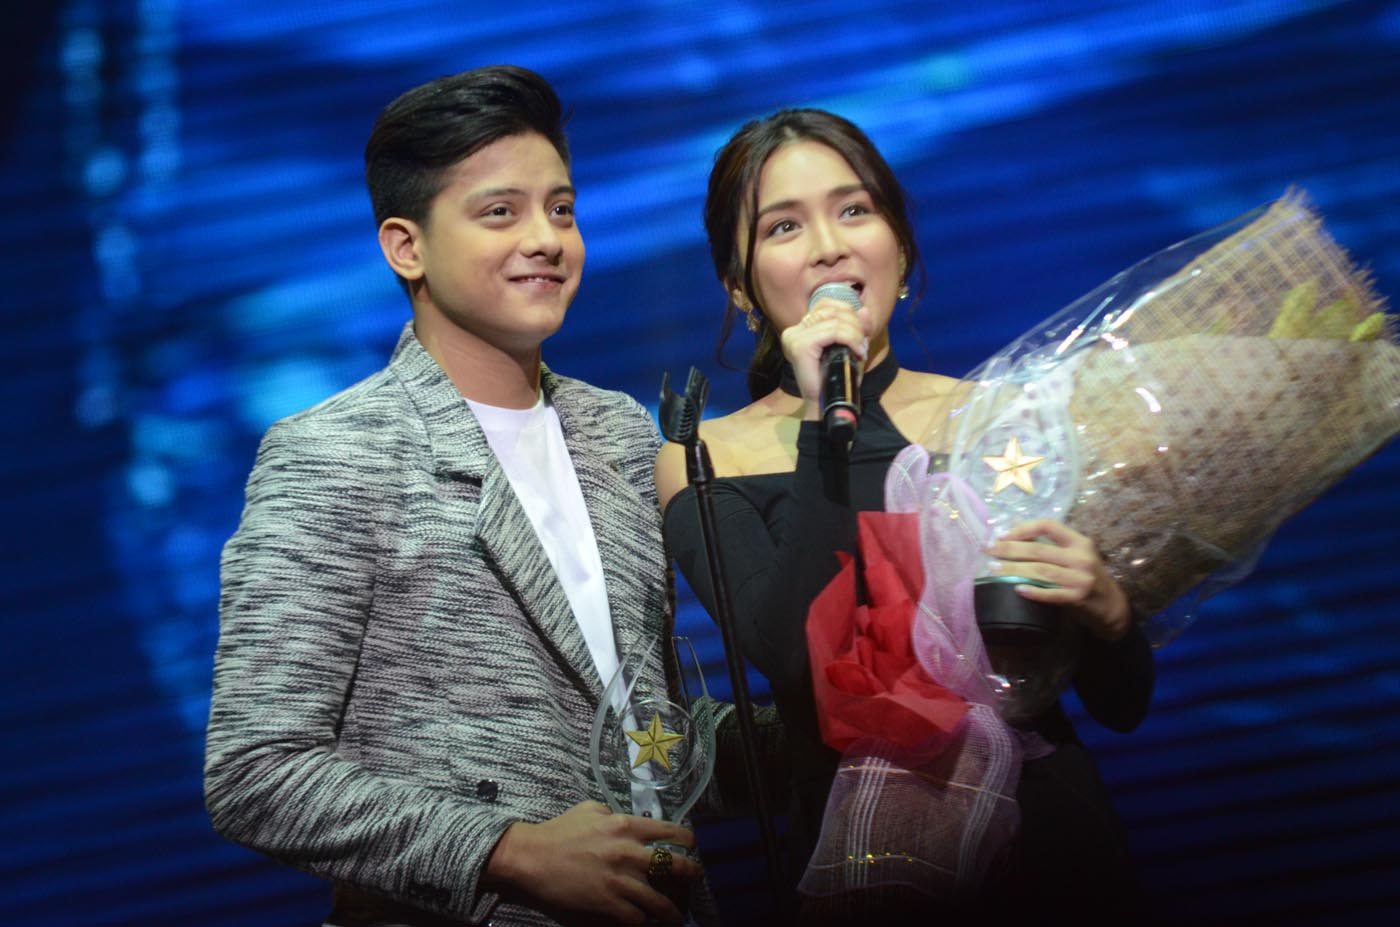 EXCLUSIVELY DATING. Daniel Padilla says that he and Kathryn Bernardo are exclusively dating, but do not have a label in their relationship.File photo by Alecs Ongcal/Rappler